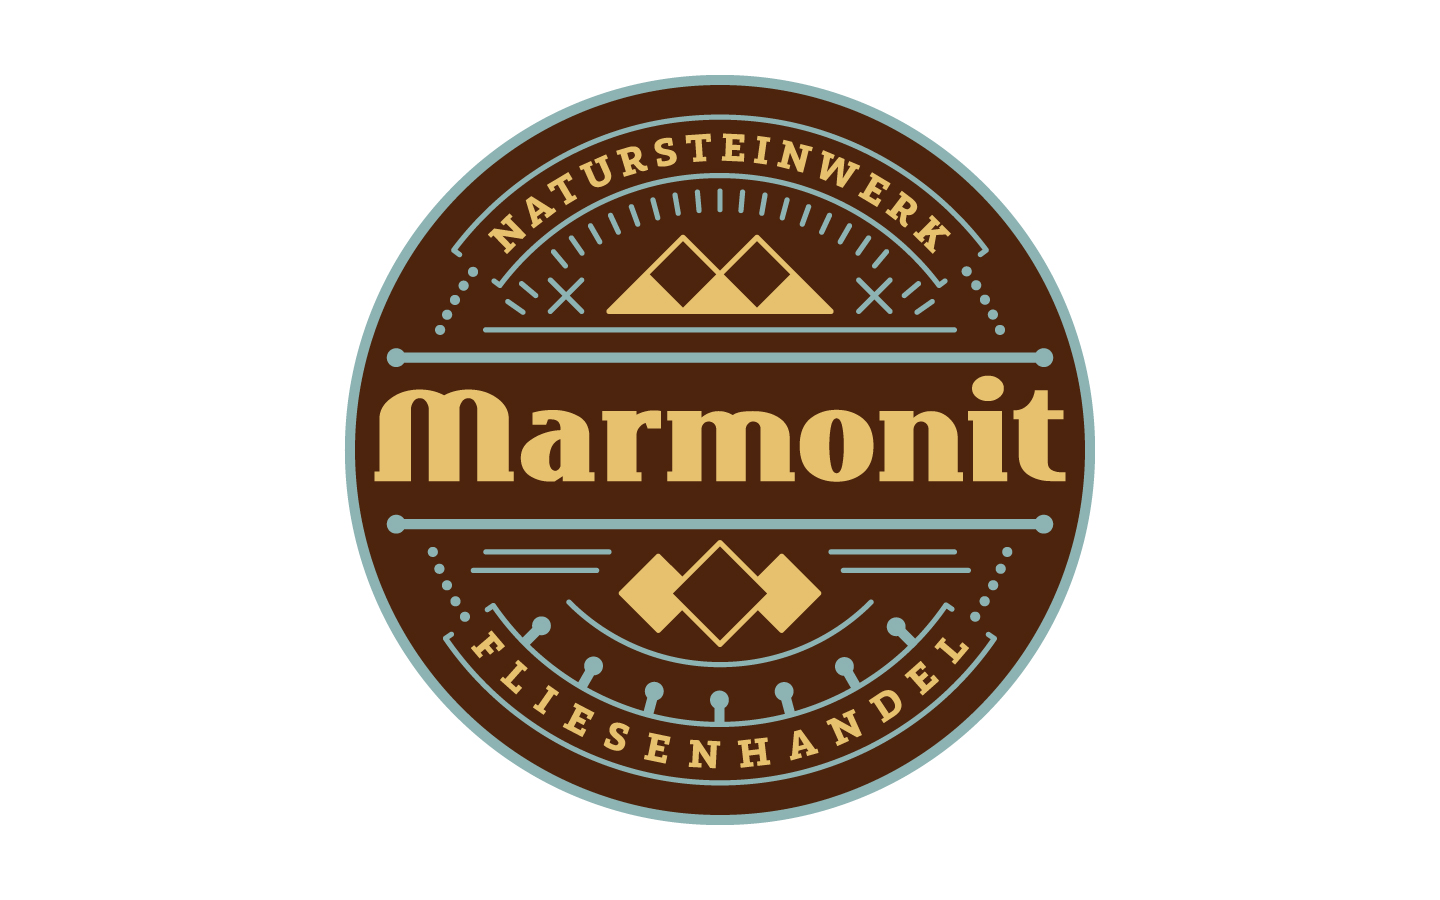 marmonit-elements_colored